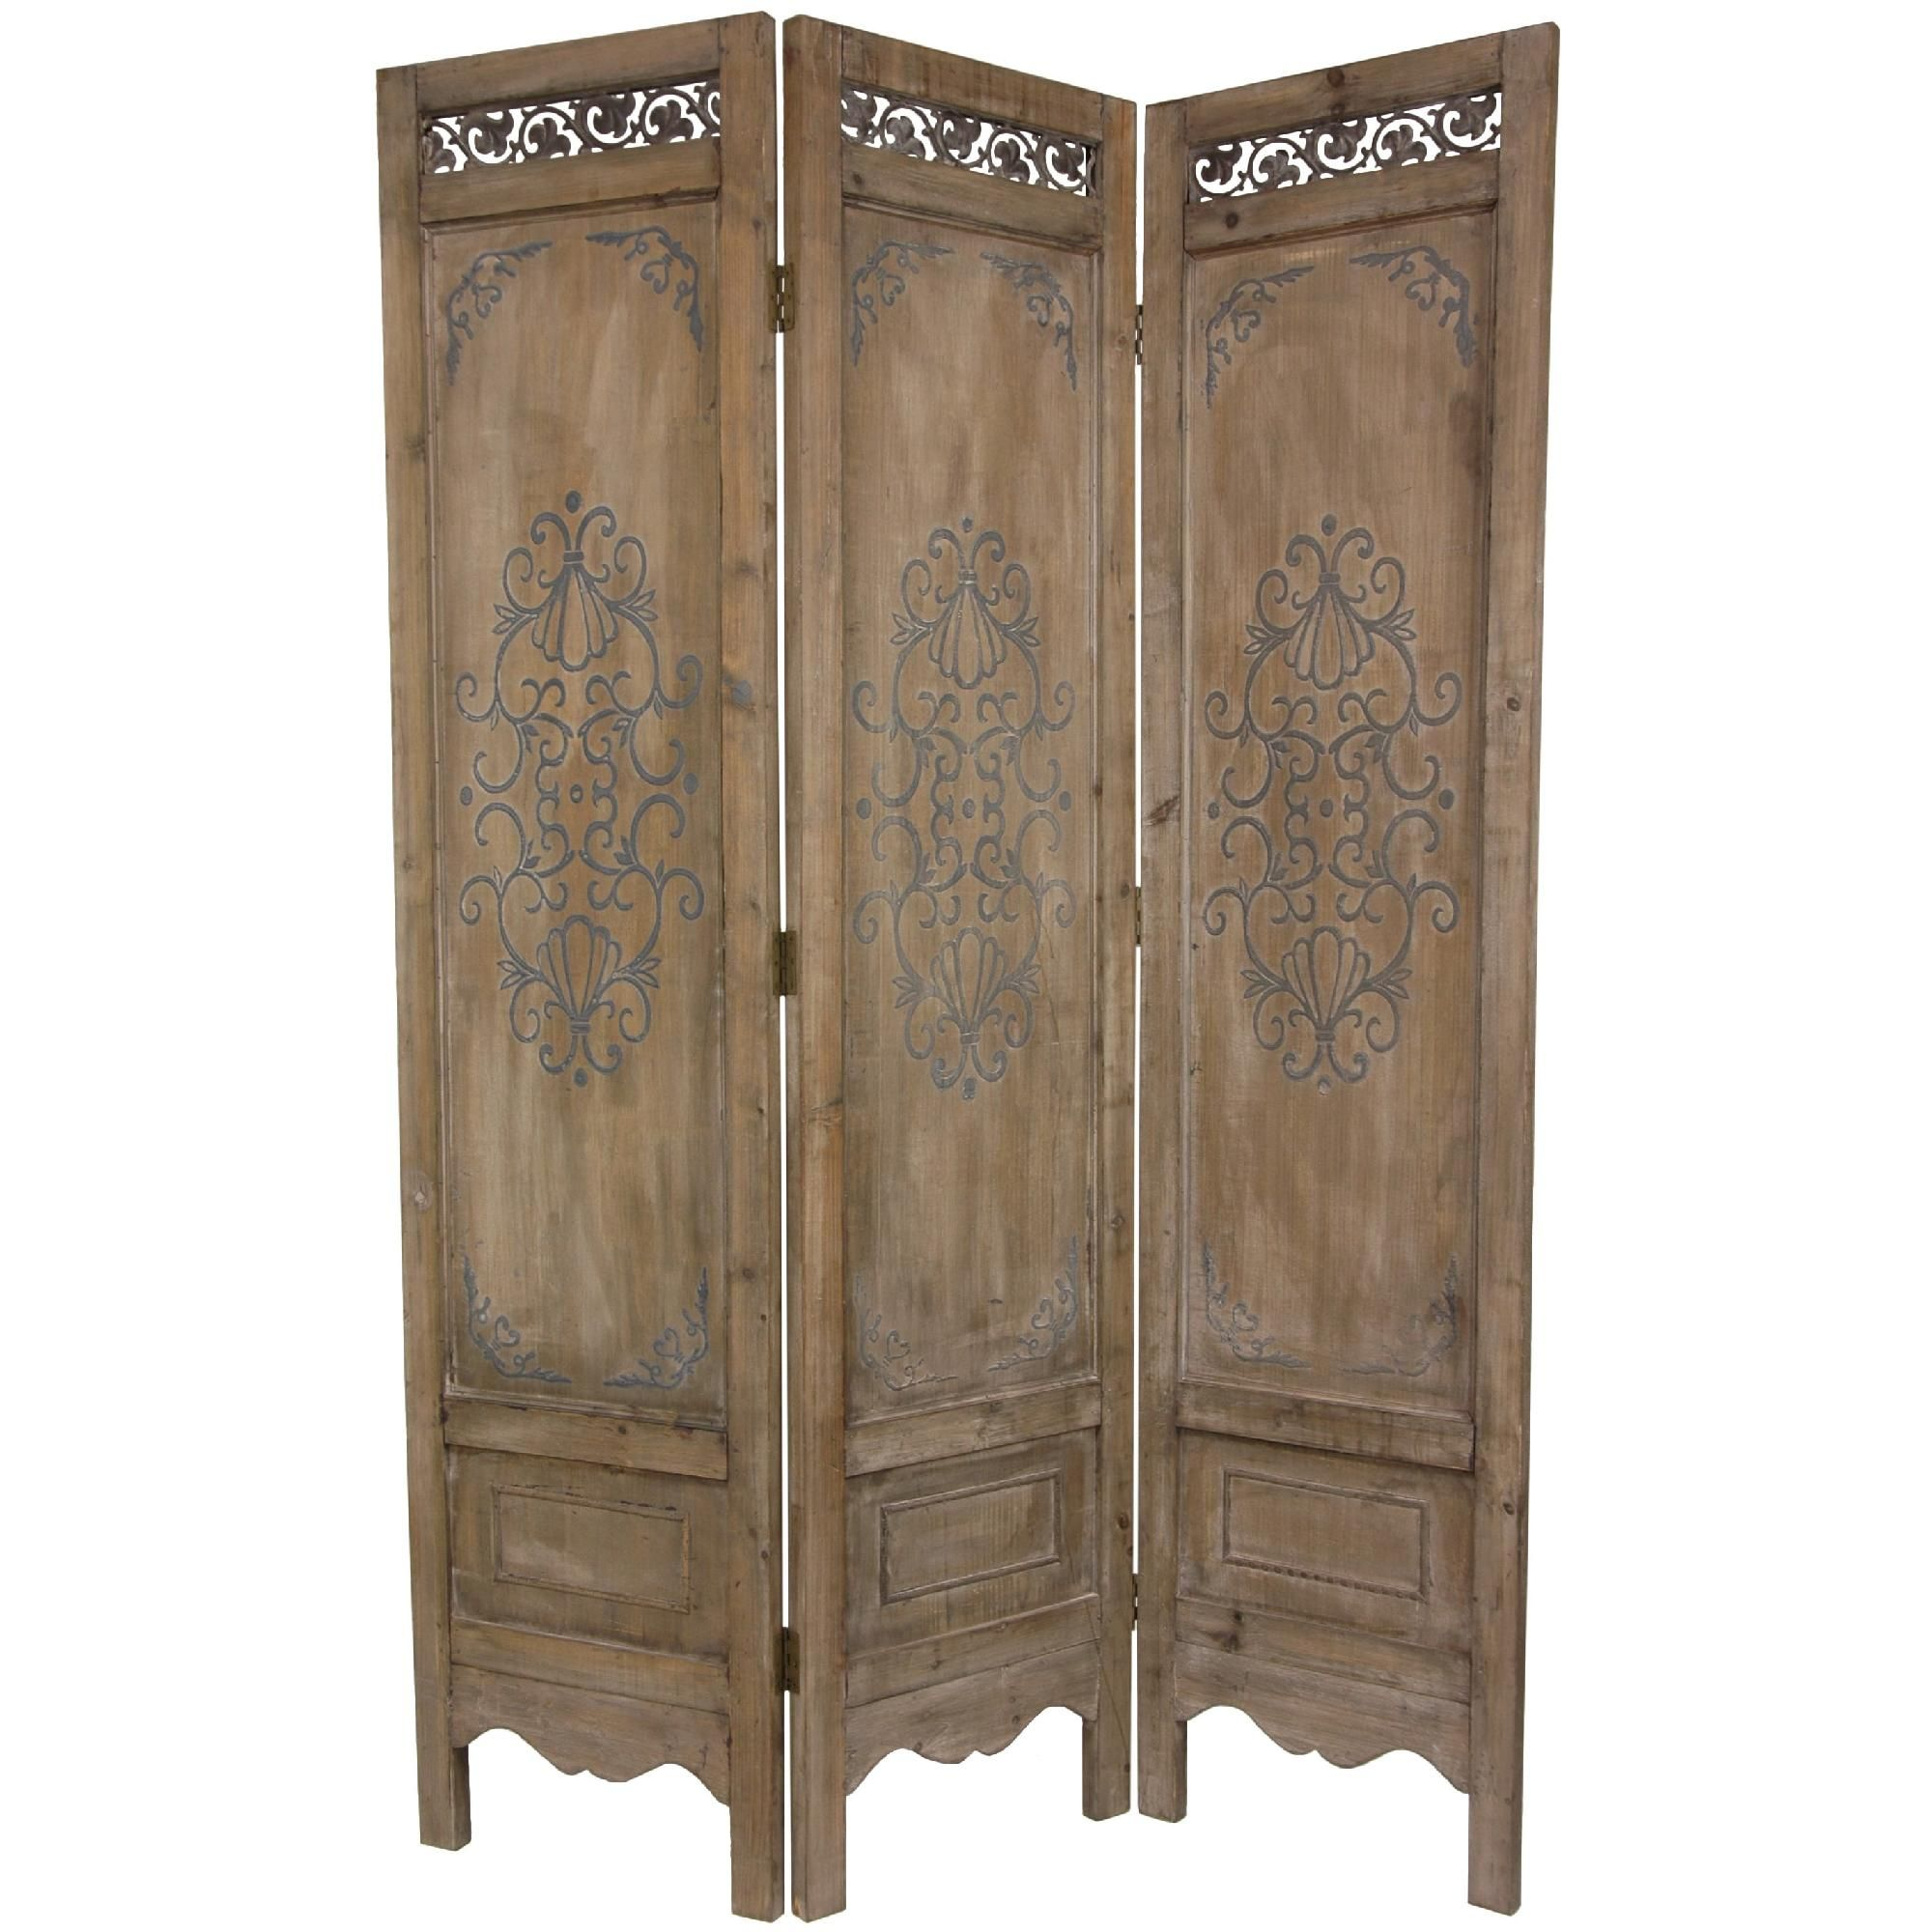 Oriental Furniture 6 ft Tall Antique Chest Design Room Divider